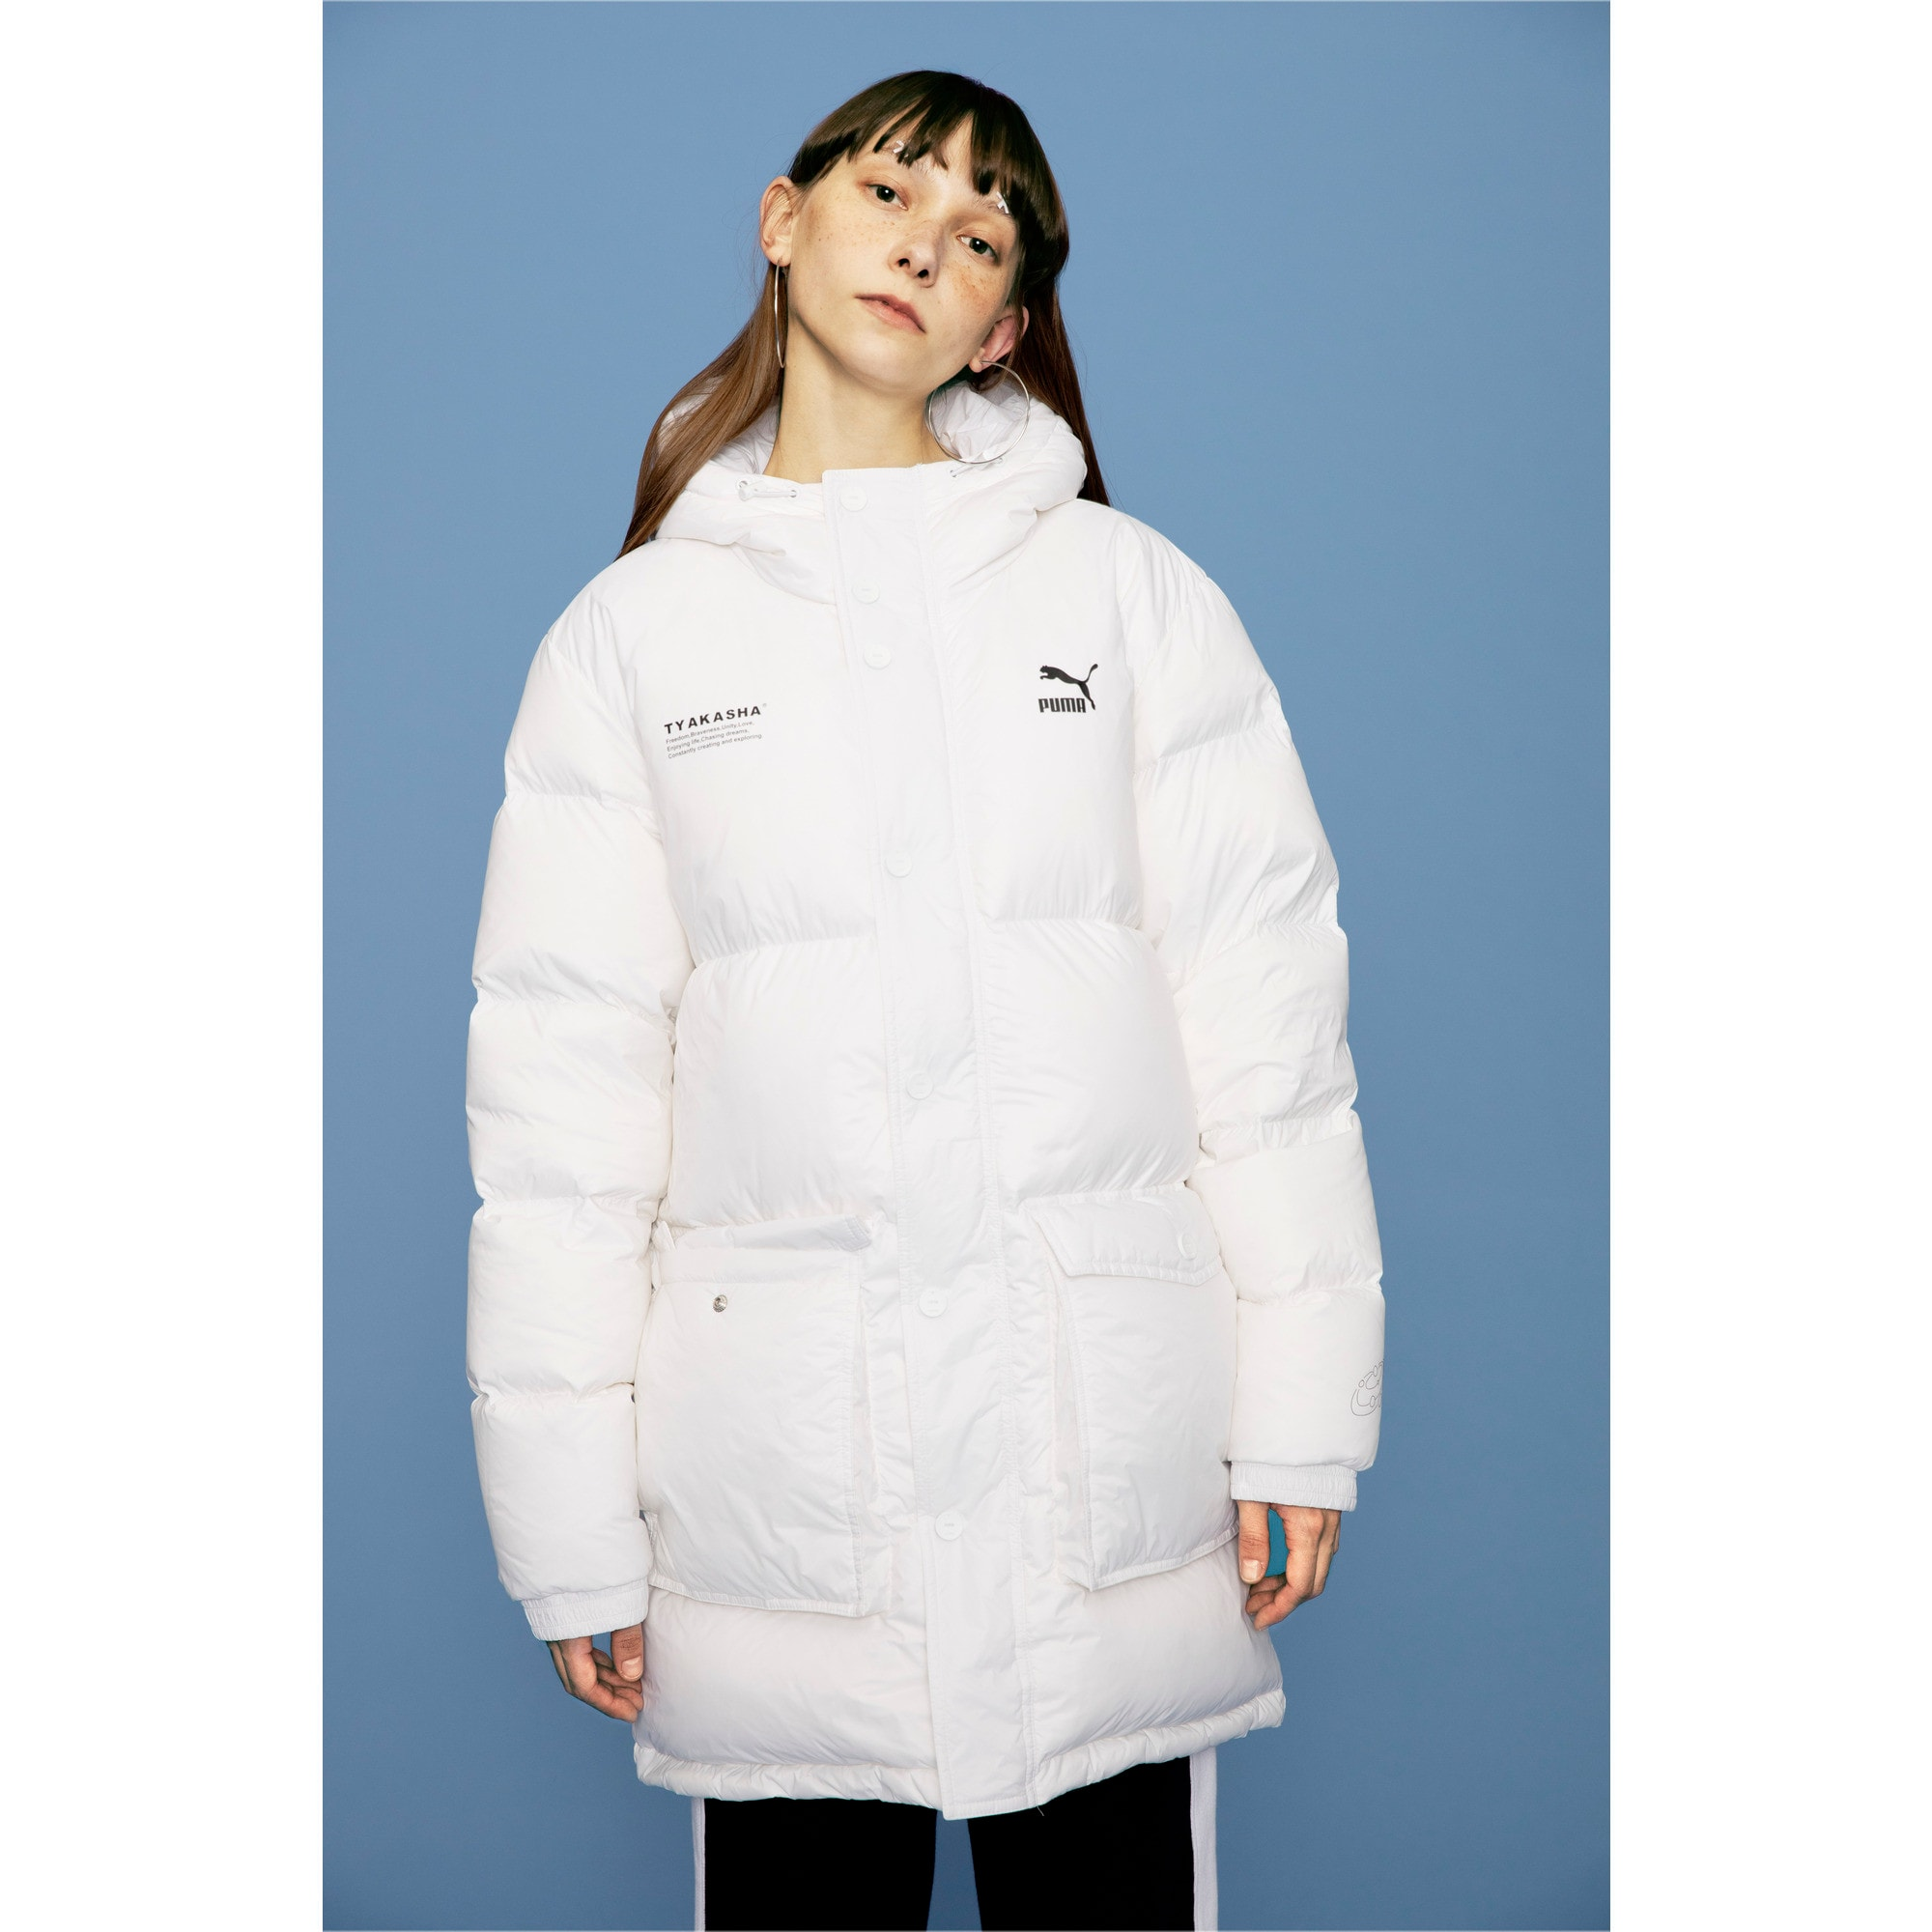 Thumbnail 7 of PUMA x TYAKASHA Down Parka, Puma White, medium